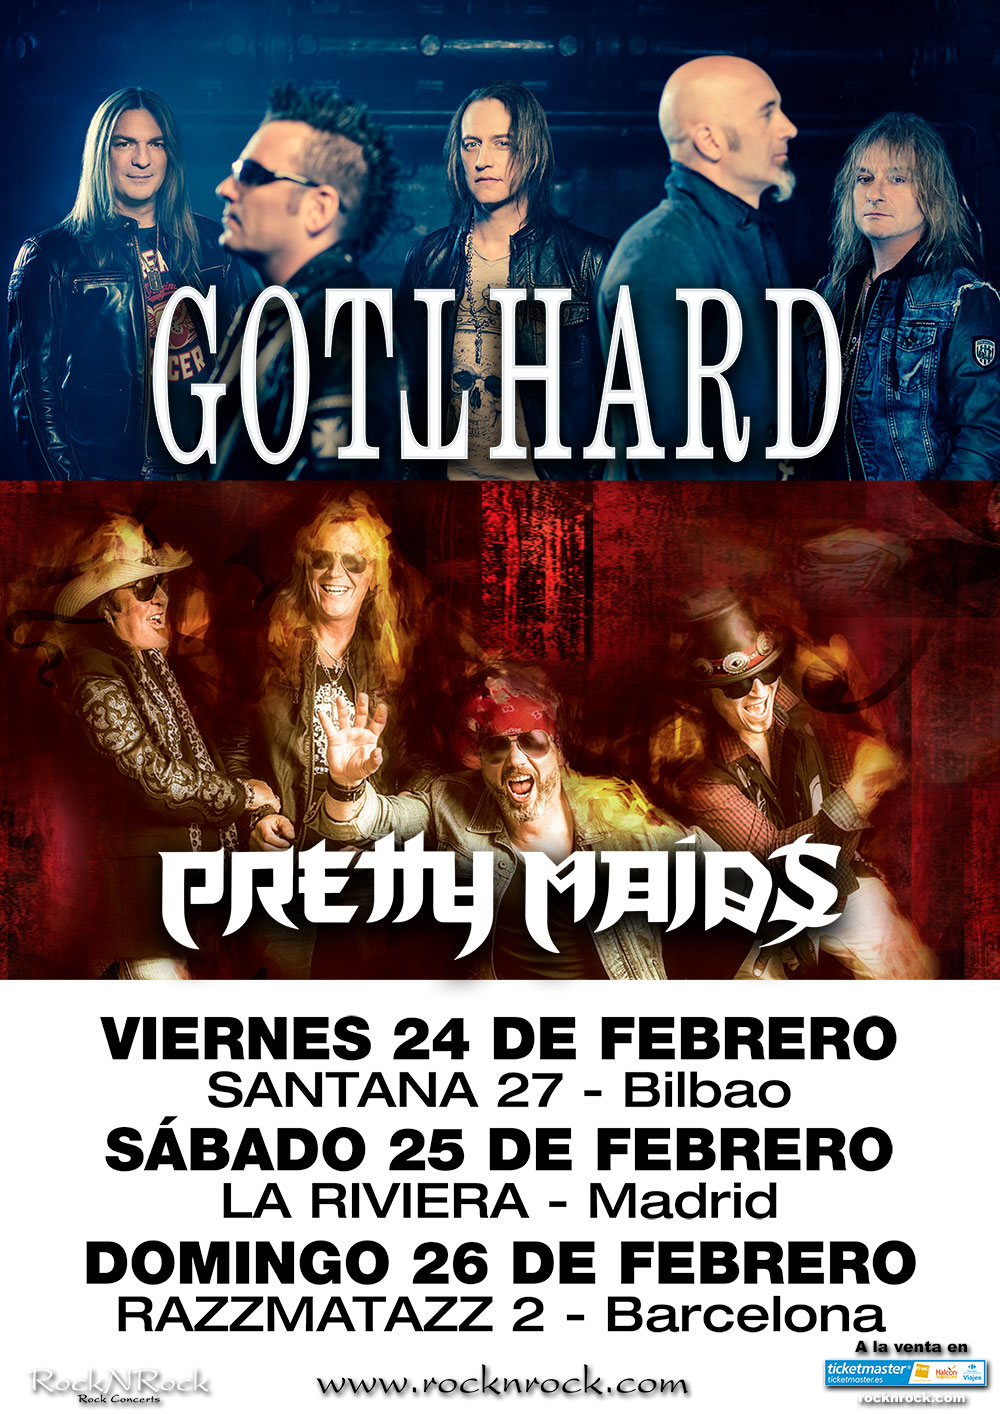 gotthard pretty maids cartel